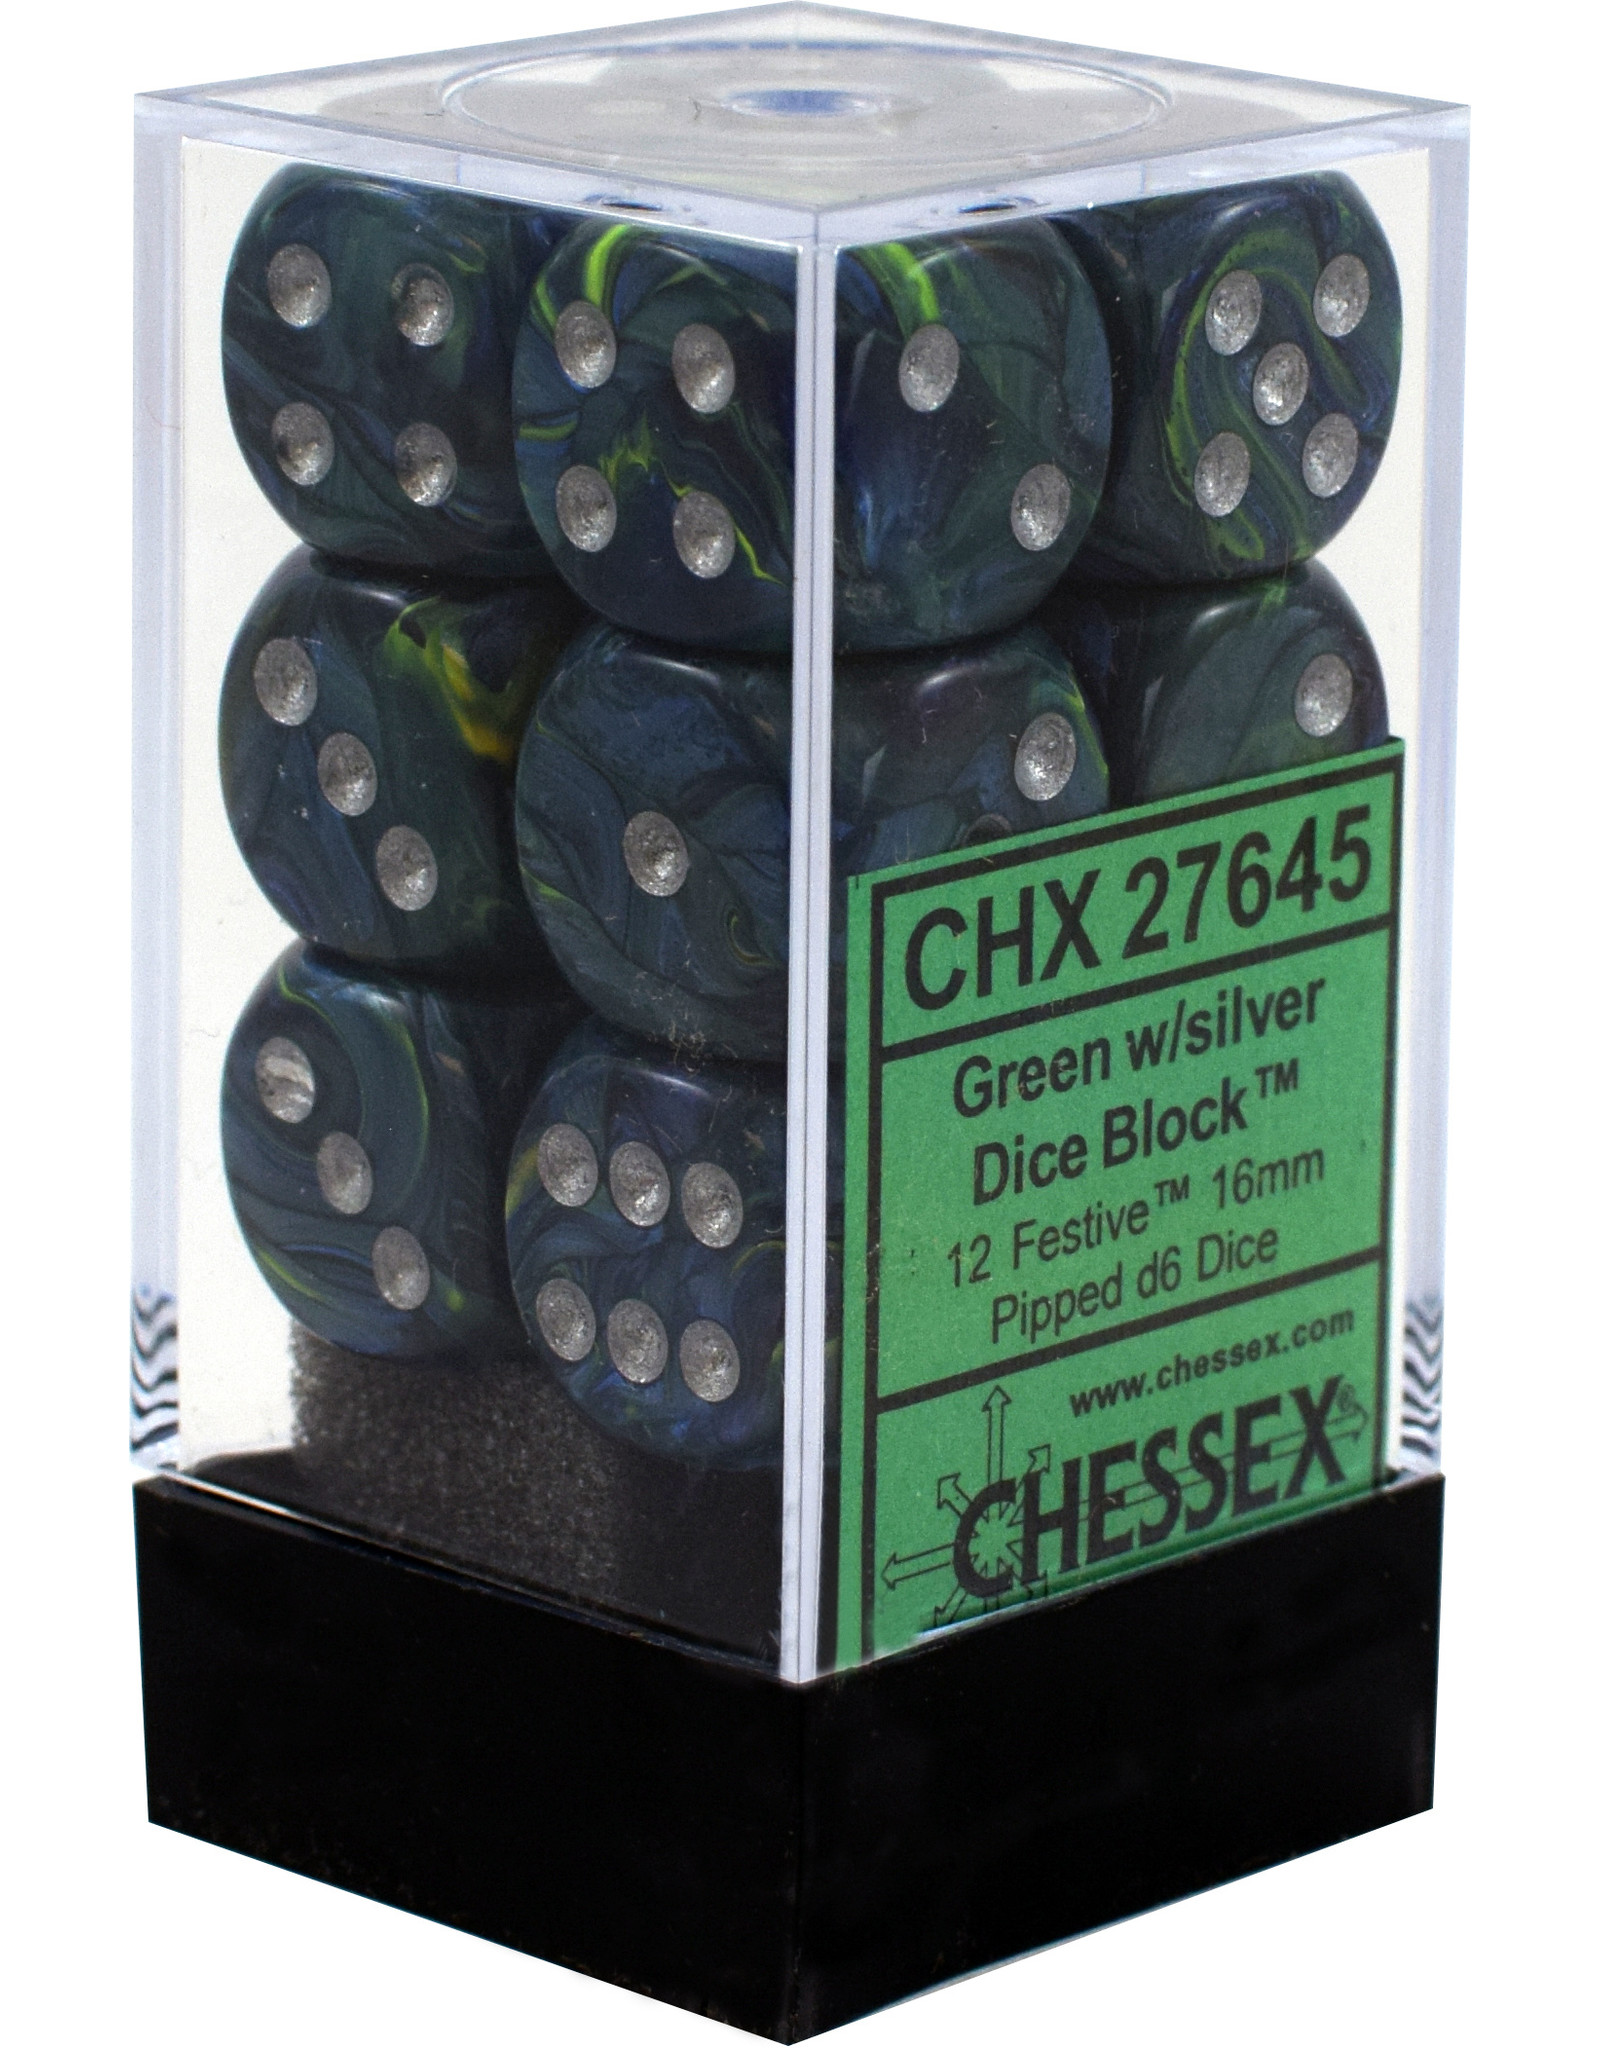 CHESSEX CHX 27645 16MM D6 DICE BLOCK FESTIVE GREEN W/SILVER